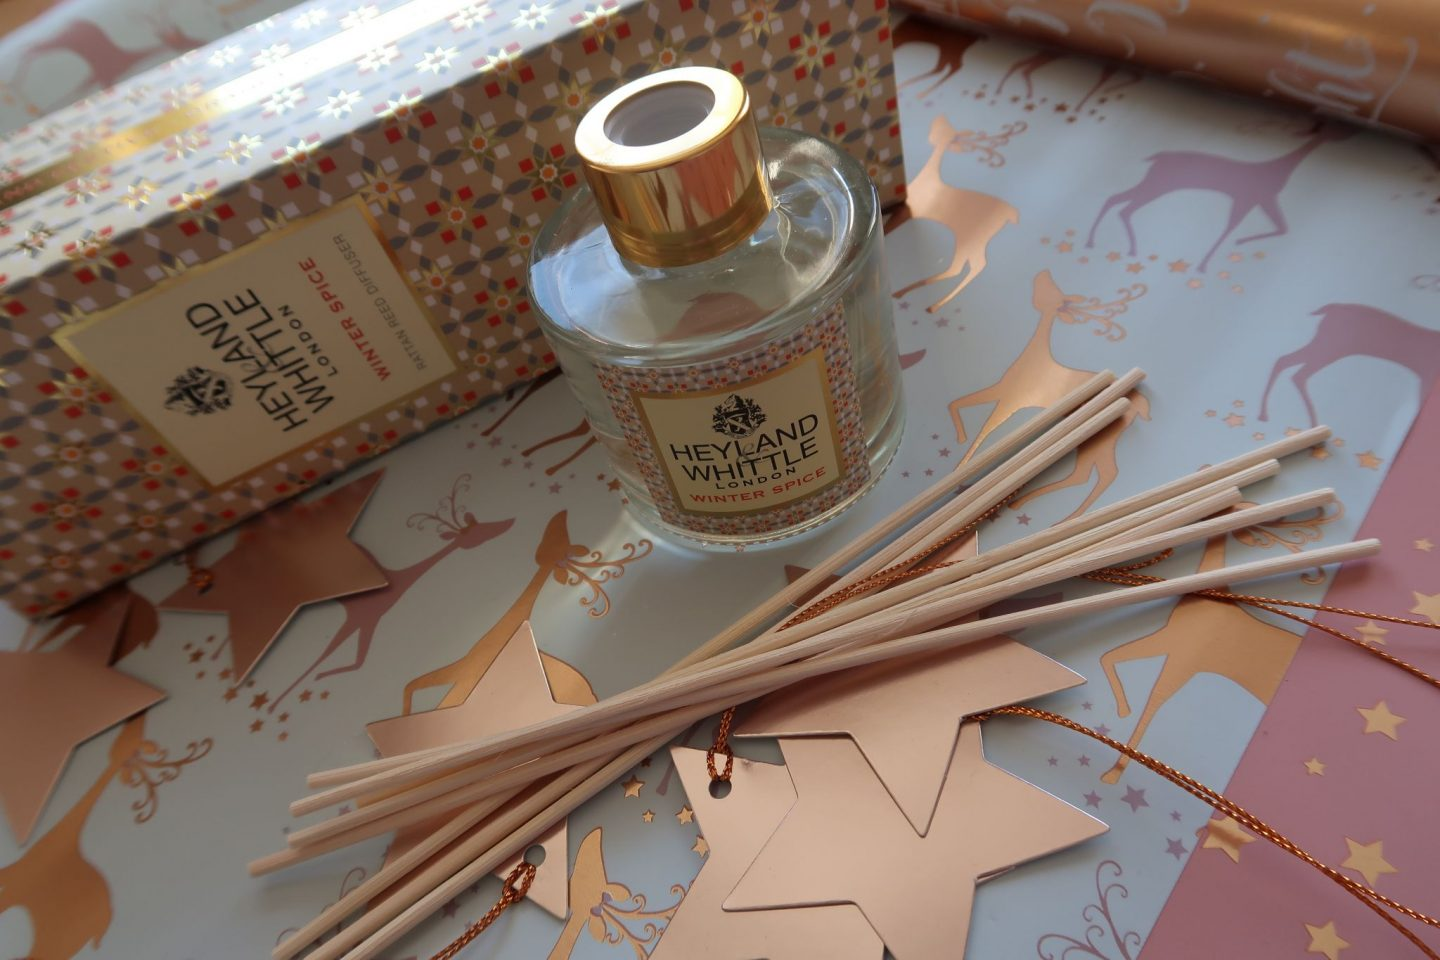 Heyland and Whittle Reed Diffuser Review WhatLauraLoves